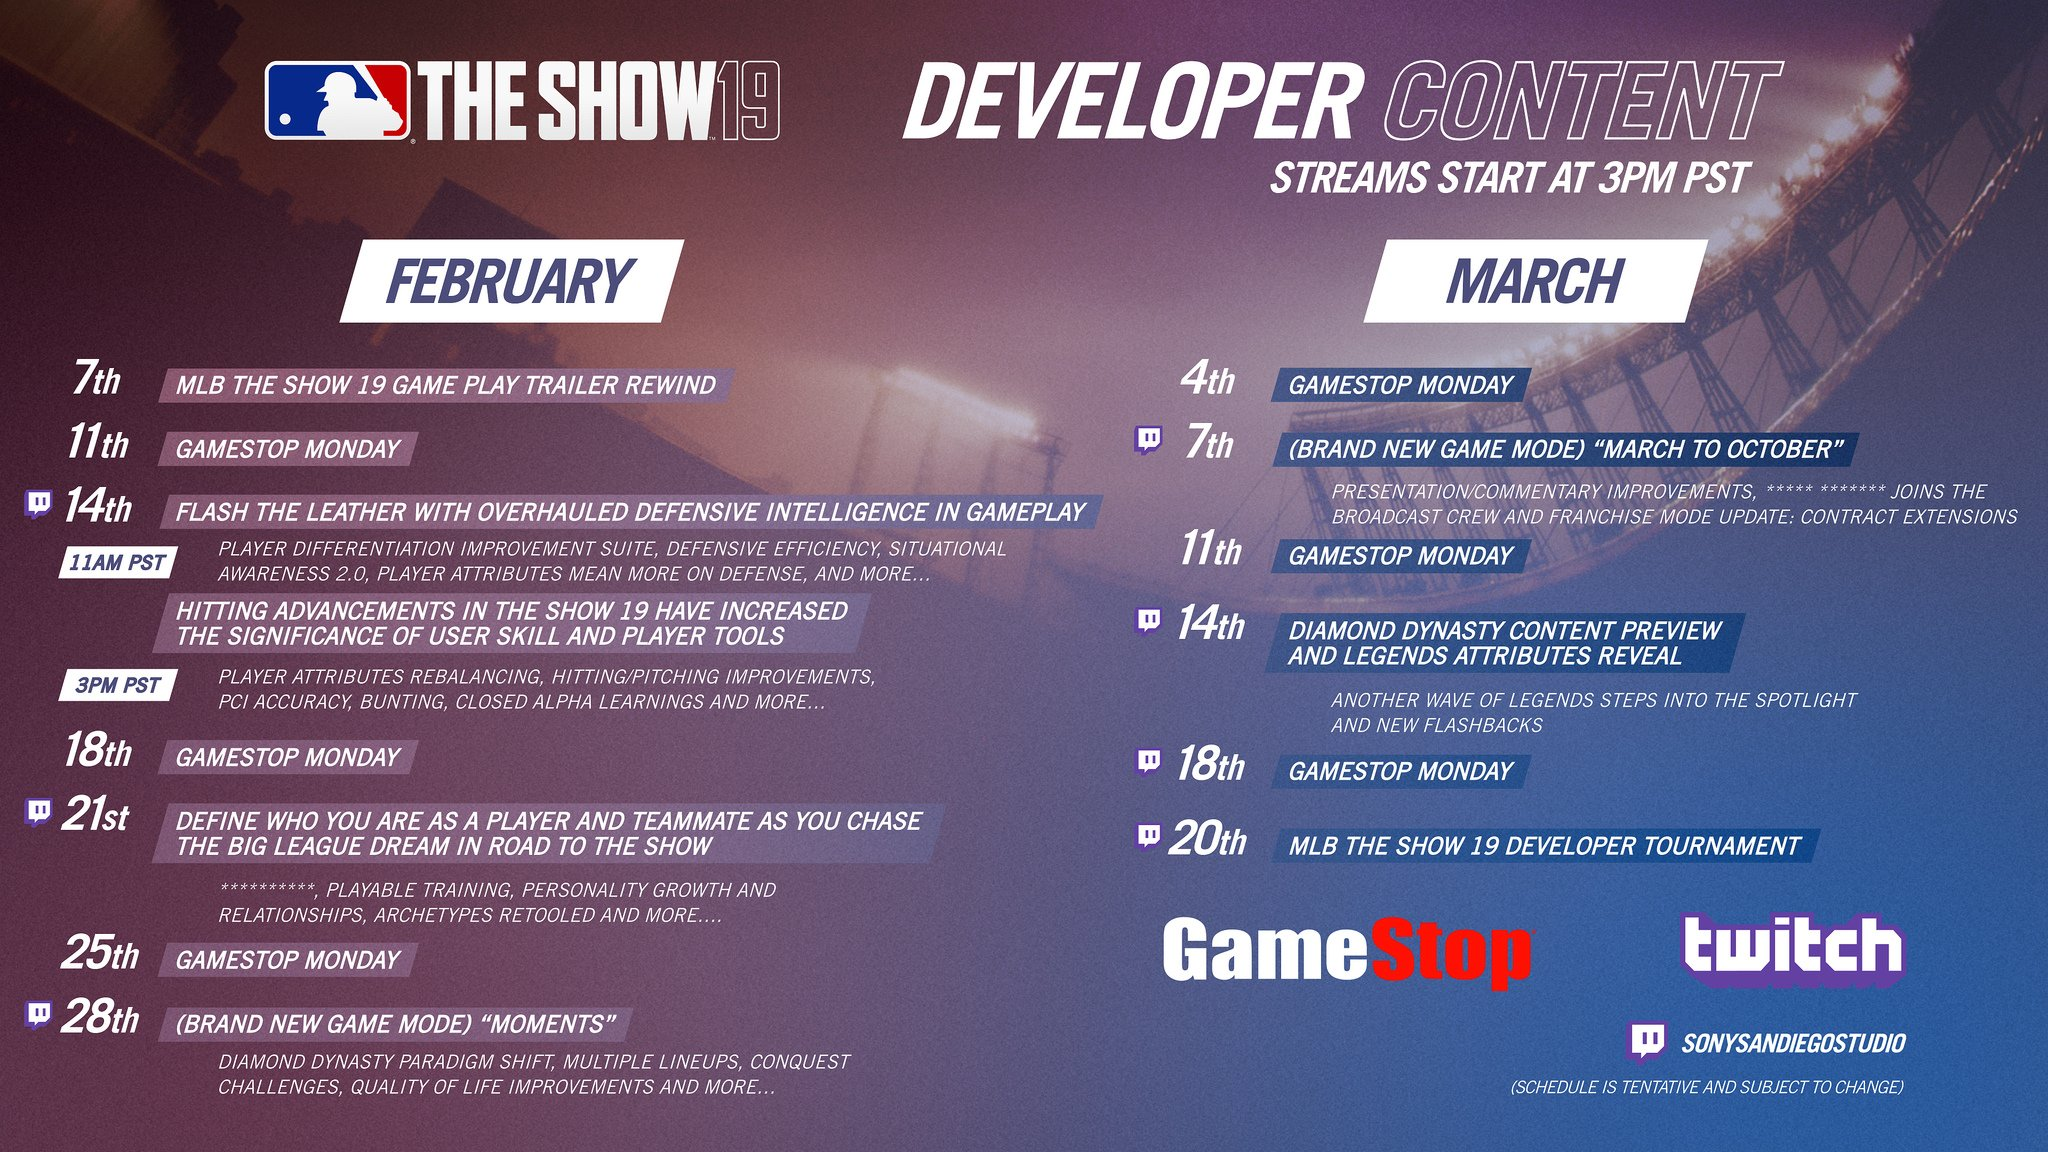 MLB The Show 19 Twitch schedule